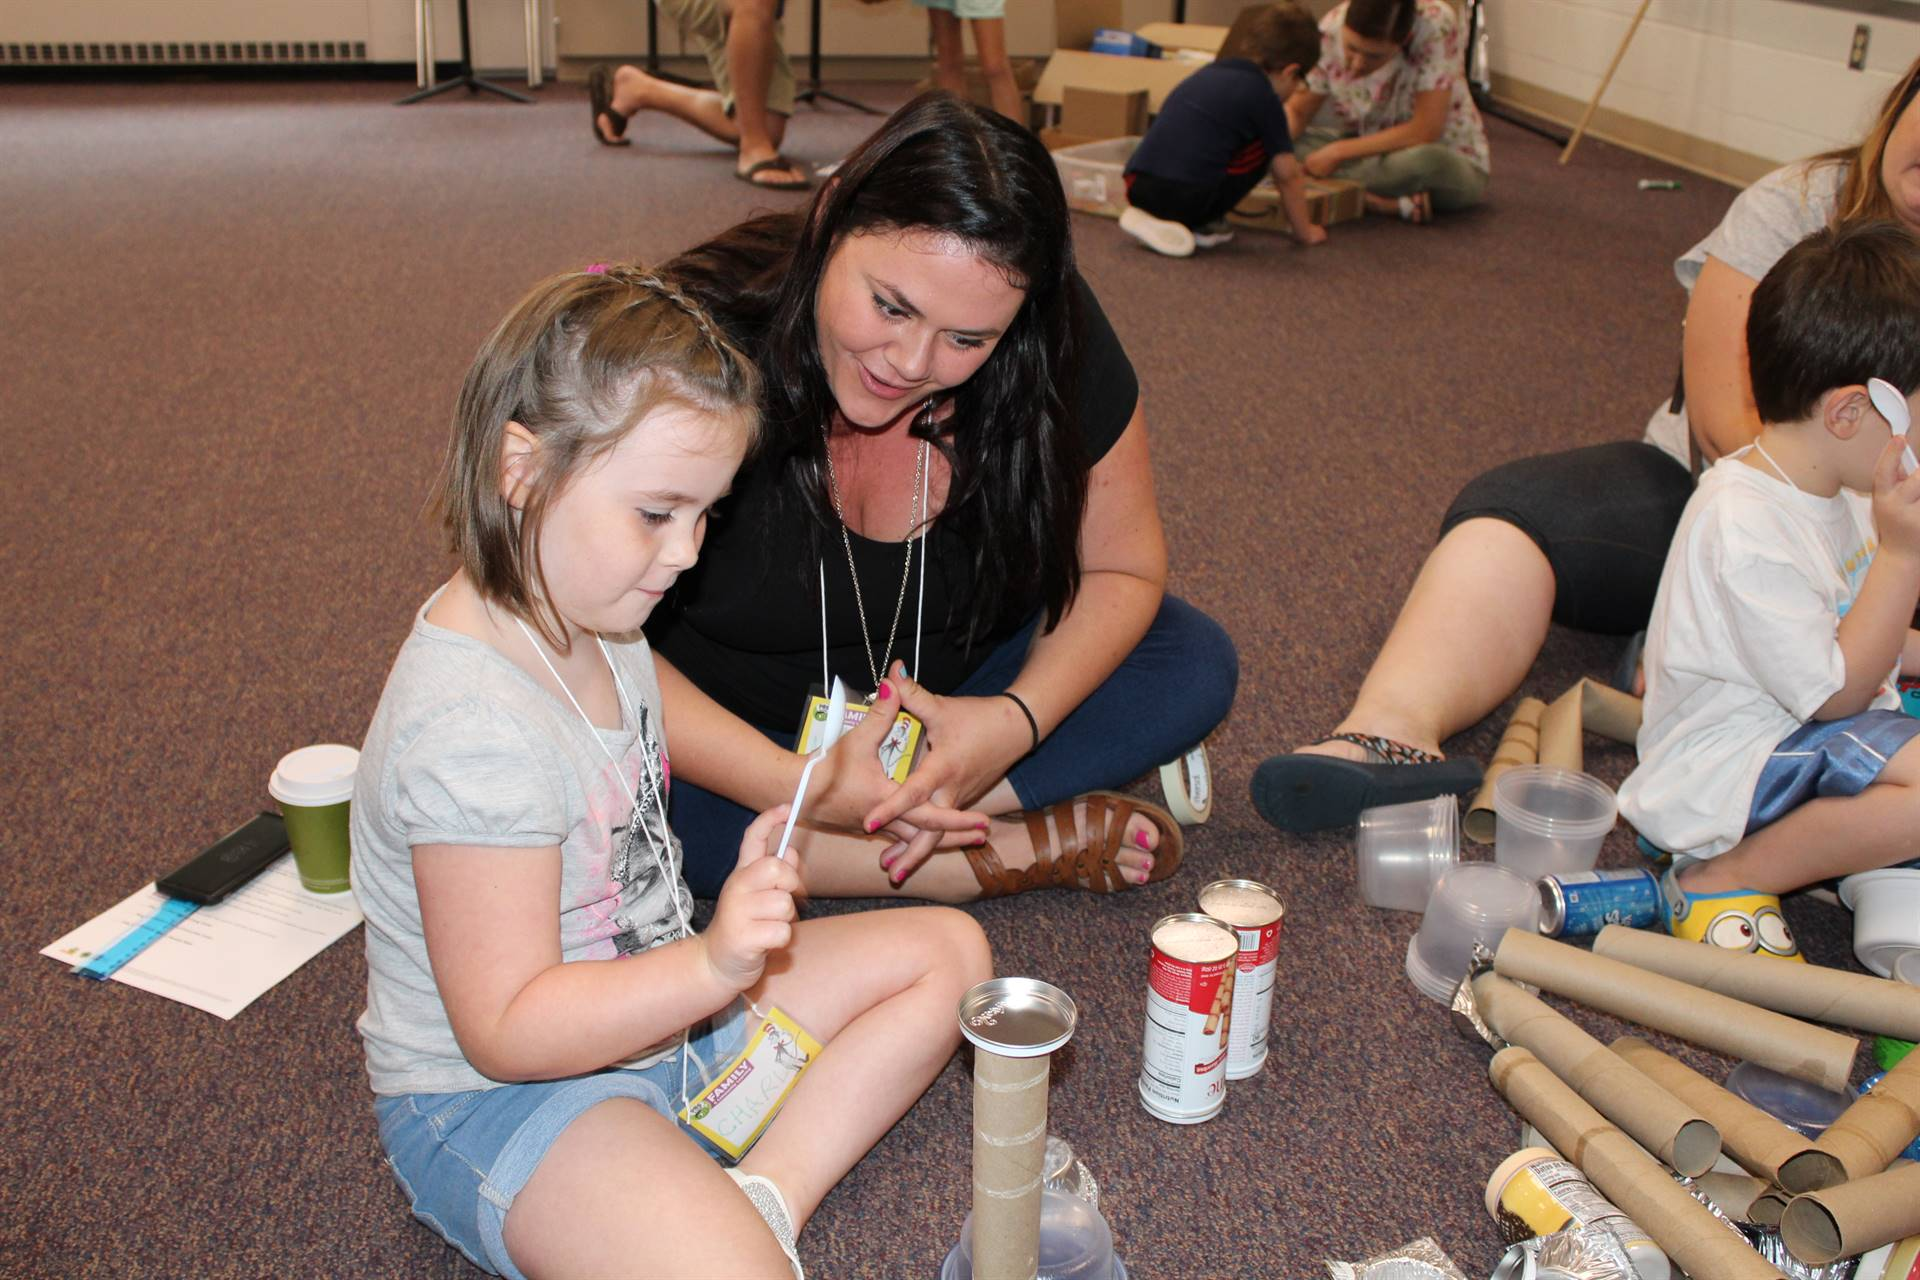 Student and parent using a spoon to make sounds by beating on an empty paper towel roll